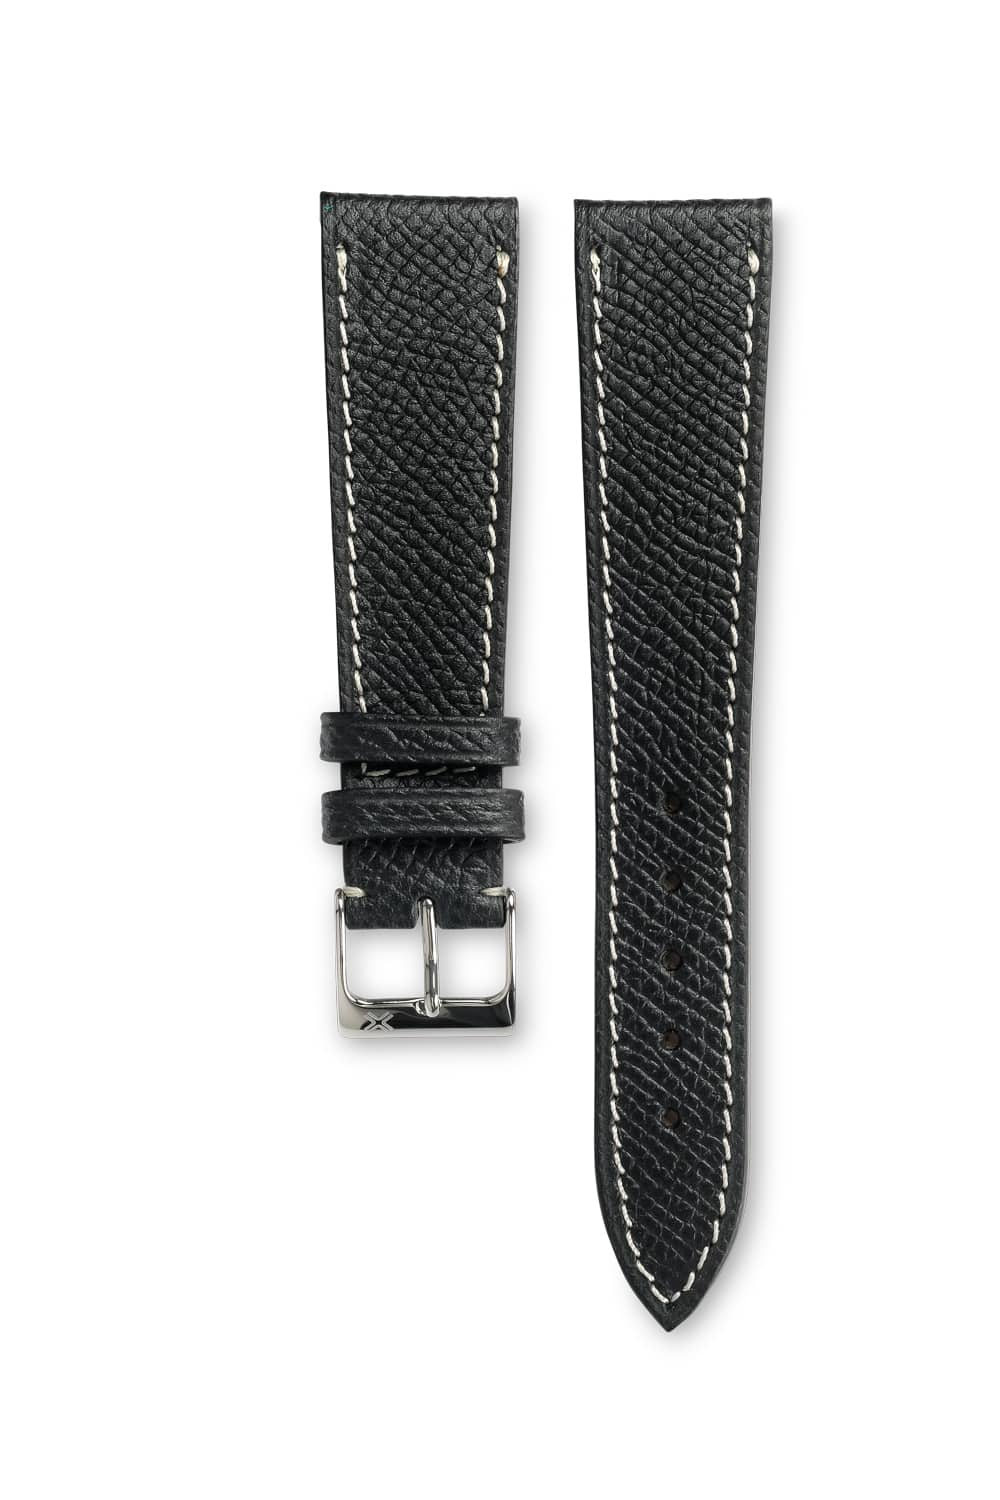 Grained classic deep black leather watch strap - cream stitching - LUGS brand